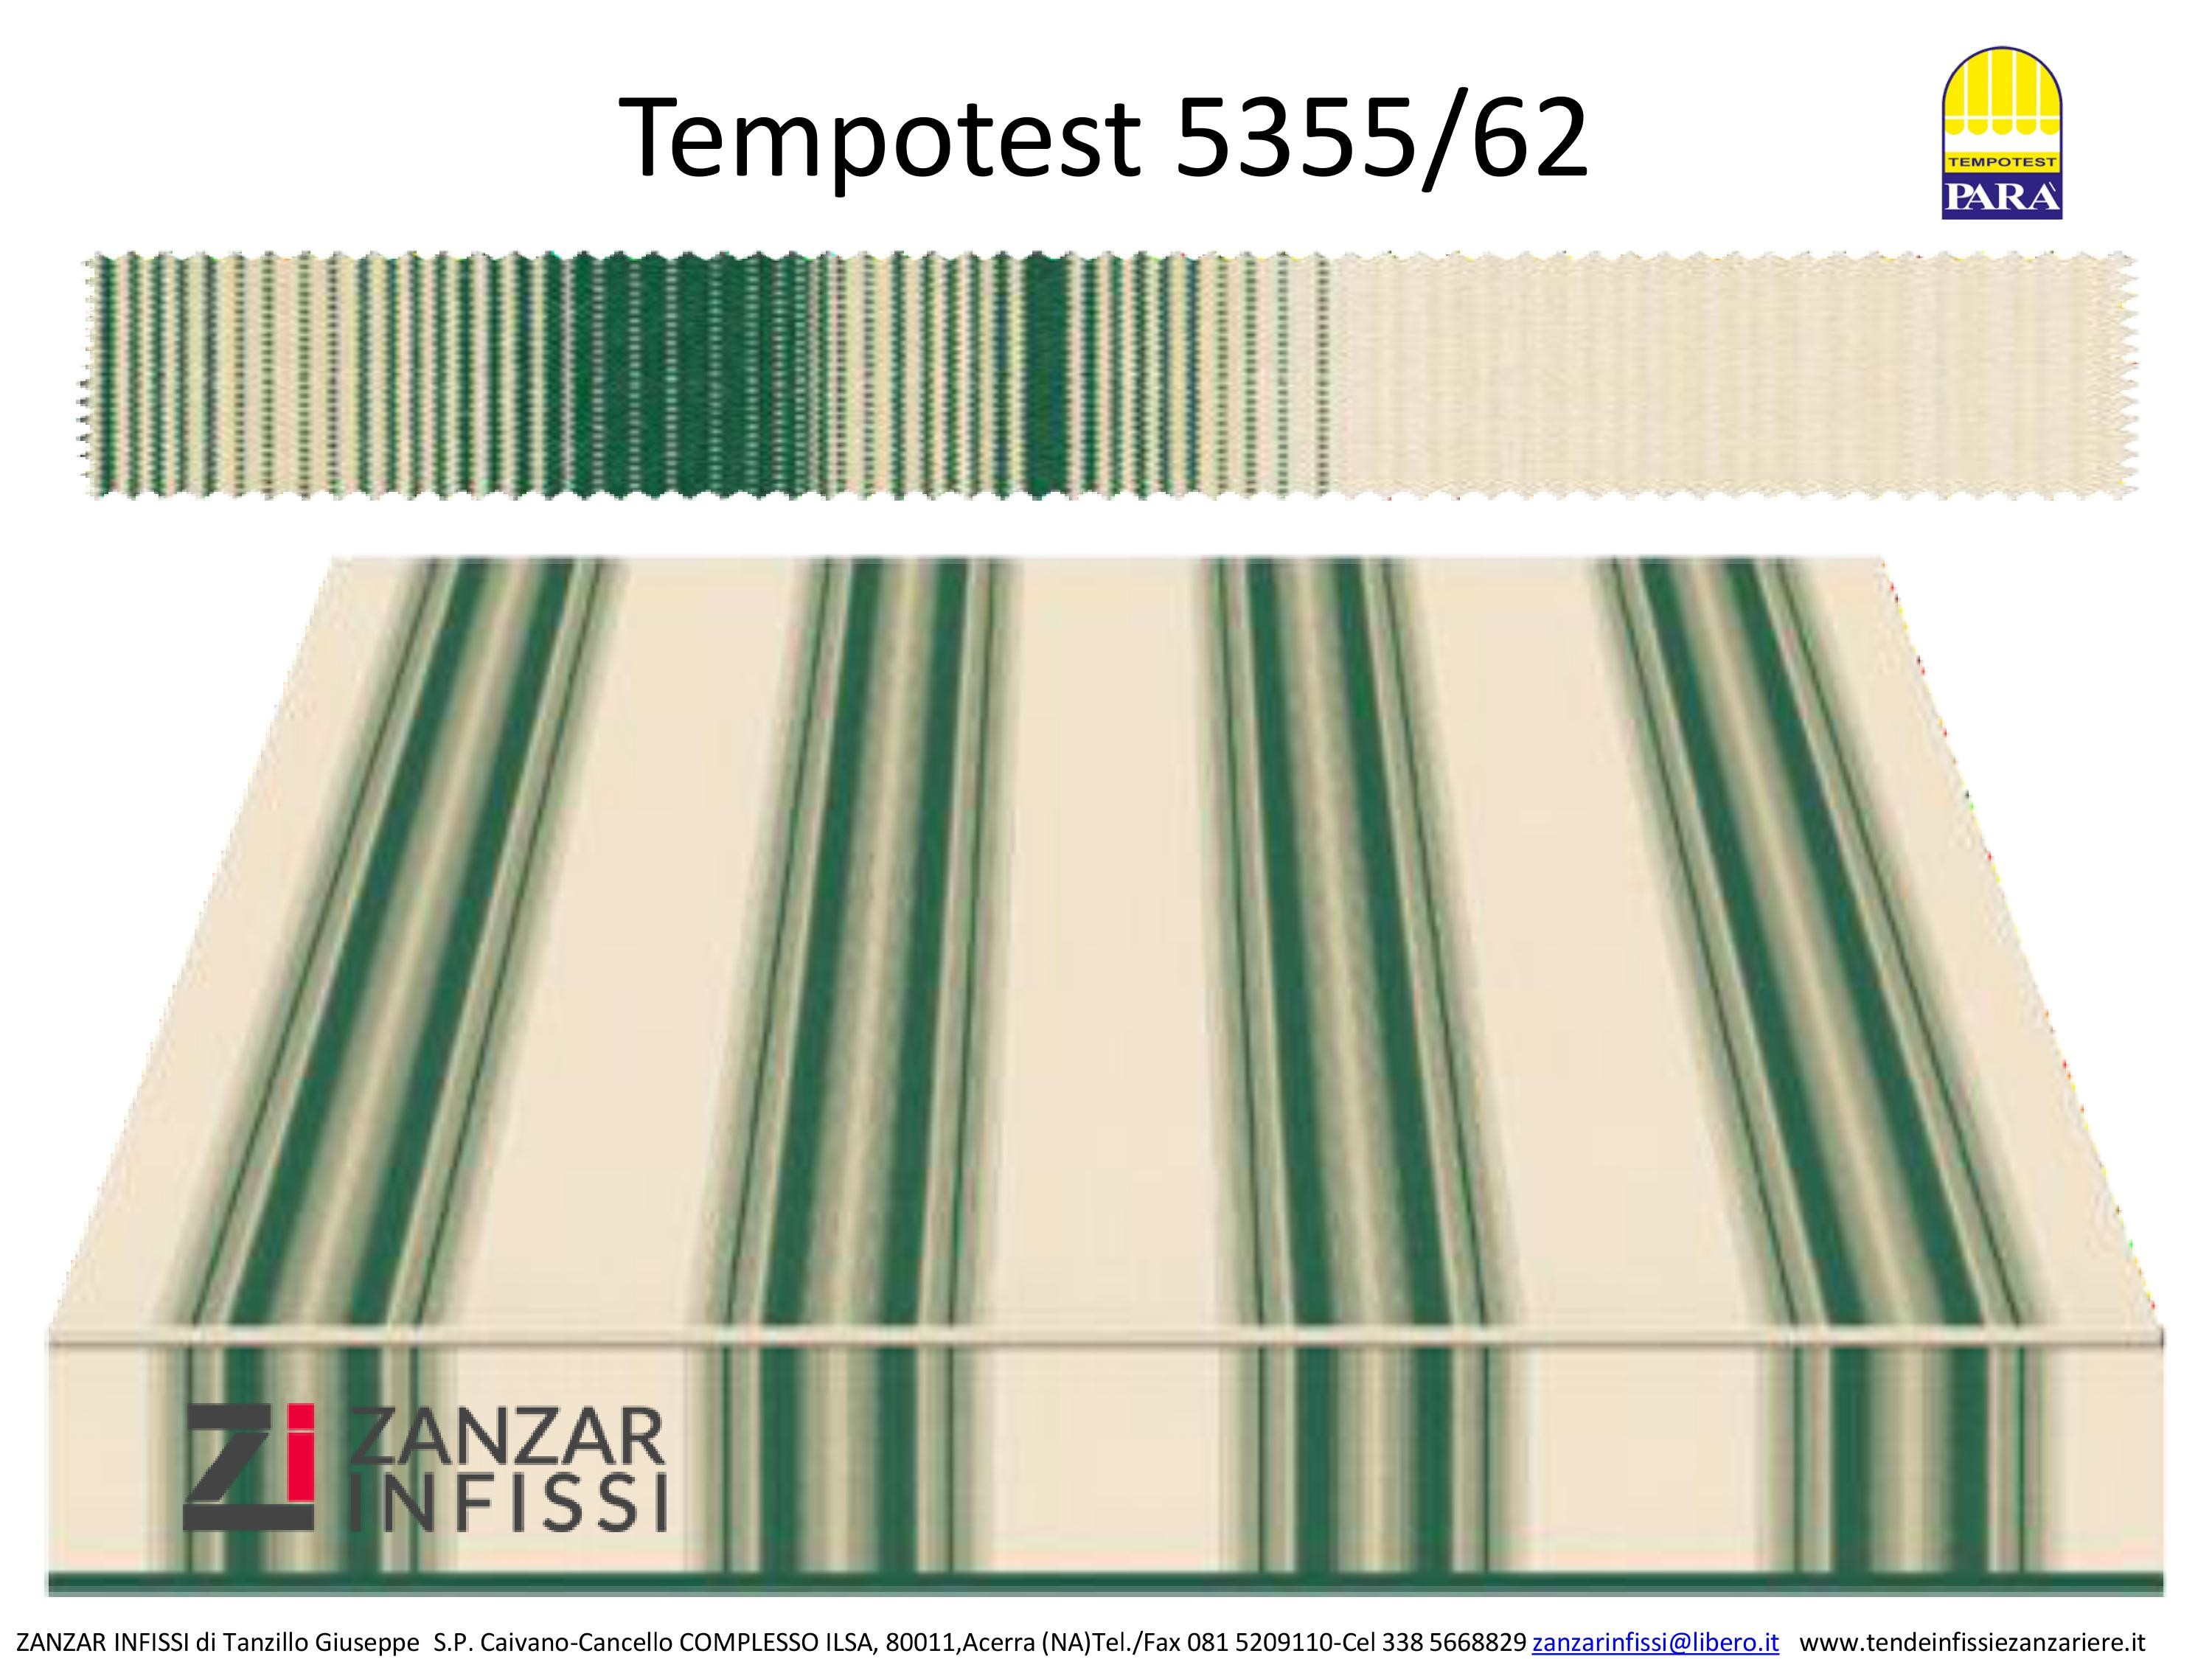 Tempotest 5355/62